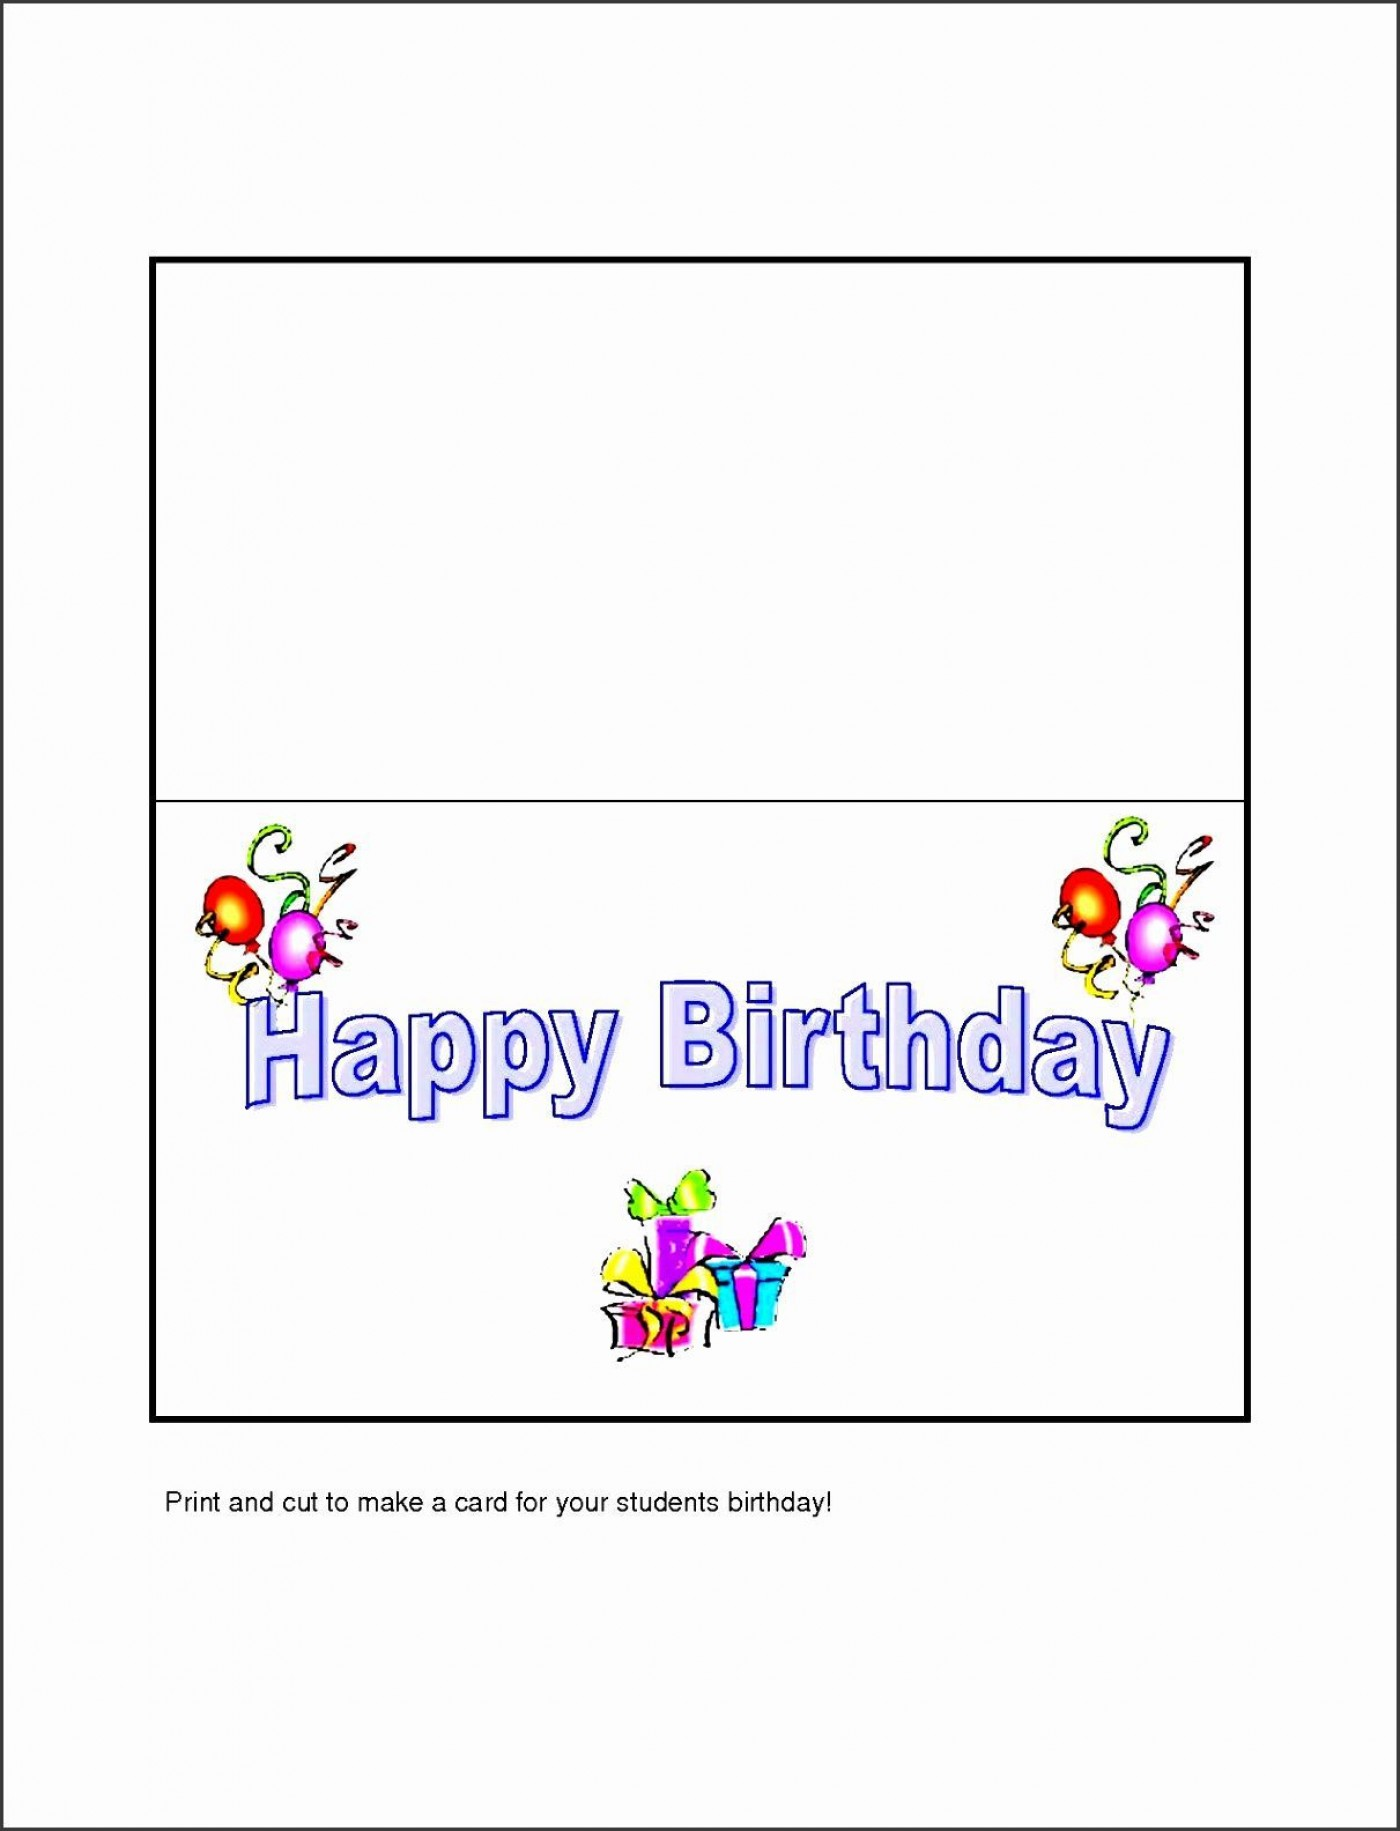 005 Fearsome Template For Birthday Card Photo  Microsoft Word Design Happy1400